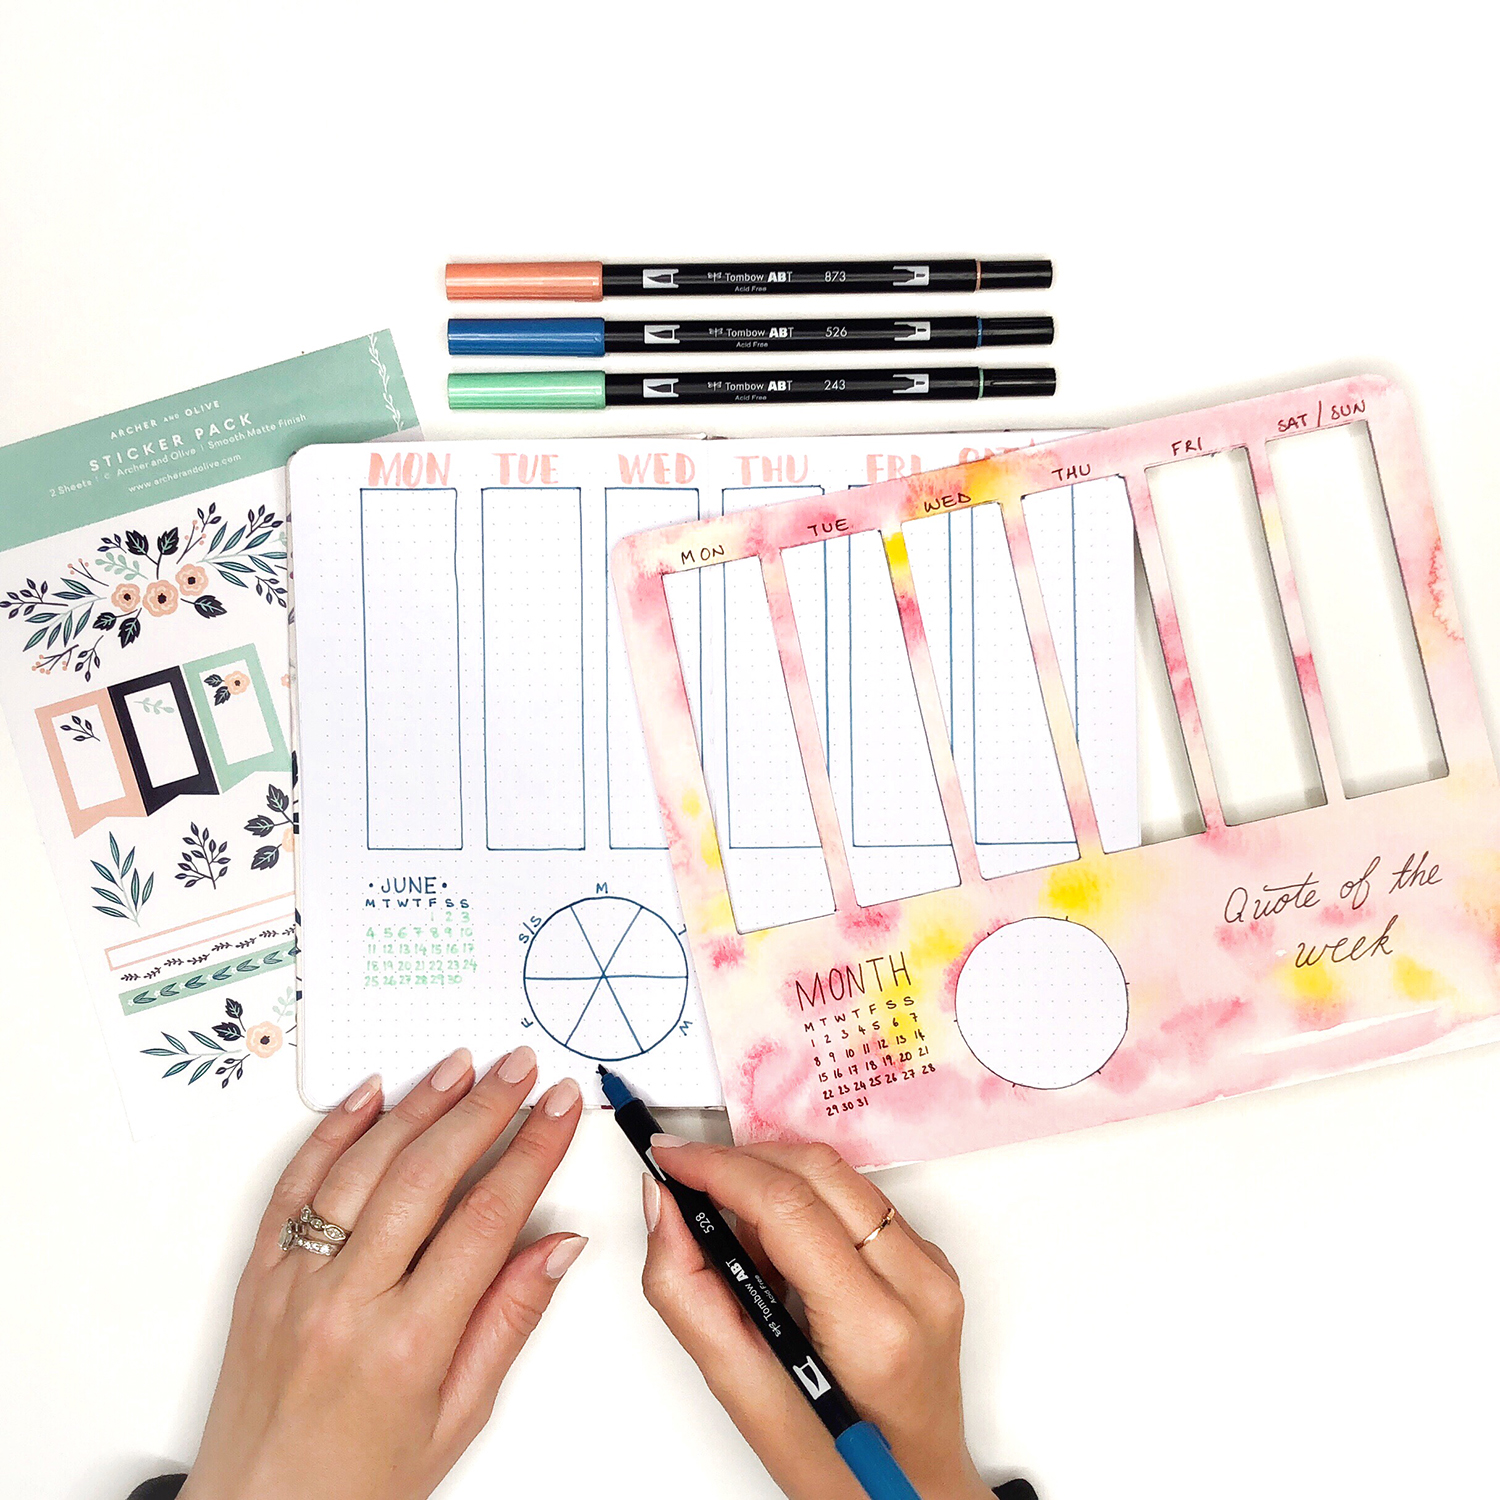 Template for Easy Weekly Planner Spreads by Jessica Mack of BrownPaperBunny